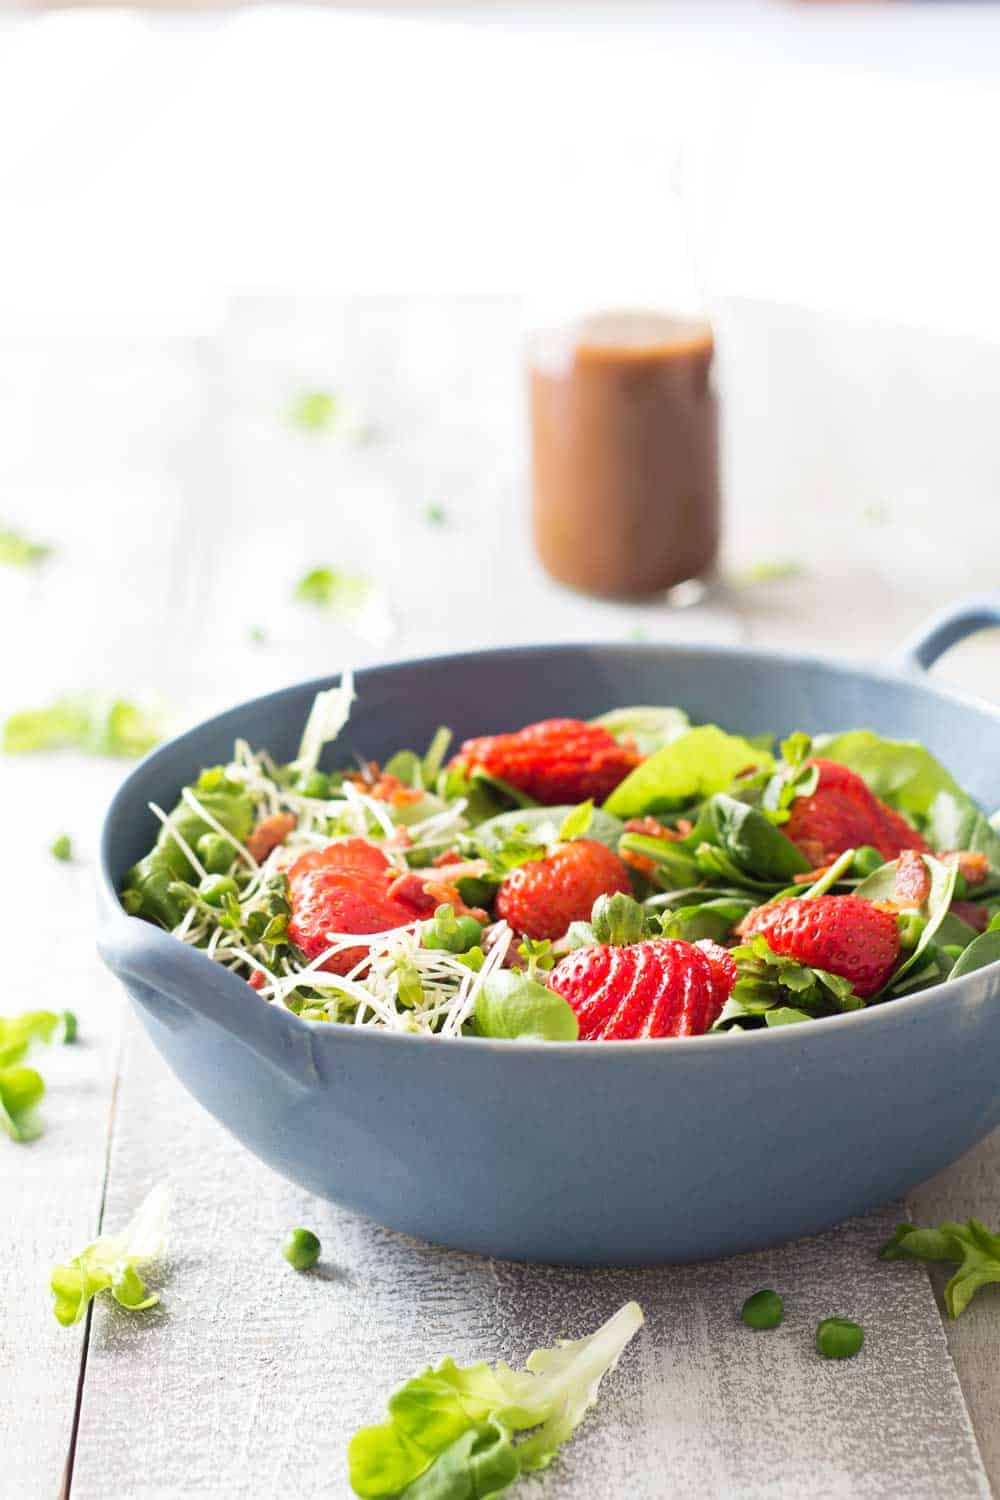 Let's pray to the spring Gods by indulging in this healthy and delicious Strawberry Bacon Spring Salad with Maple Mustard Balsamic Dressing. Yum!